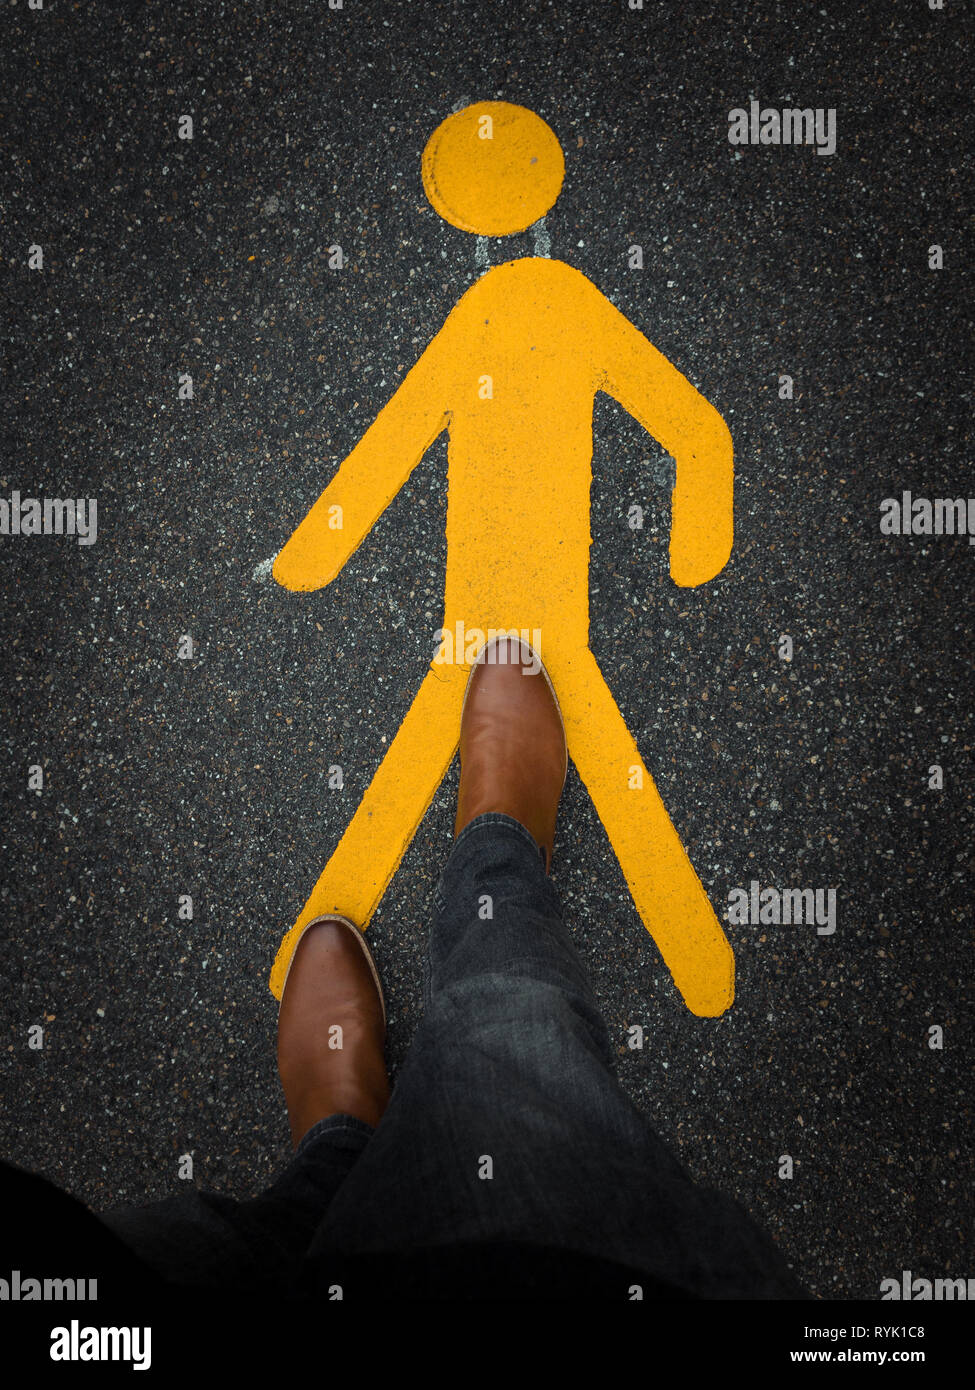 pedestrian sign on pavement with brown leather boot - Stock Image